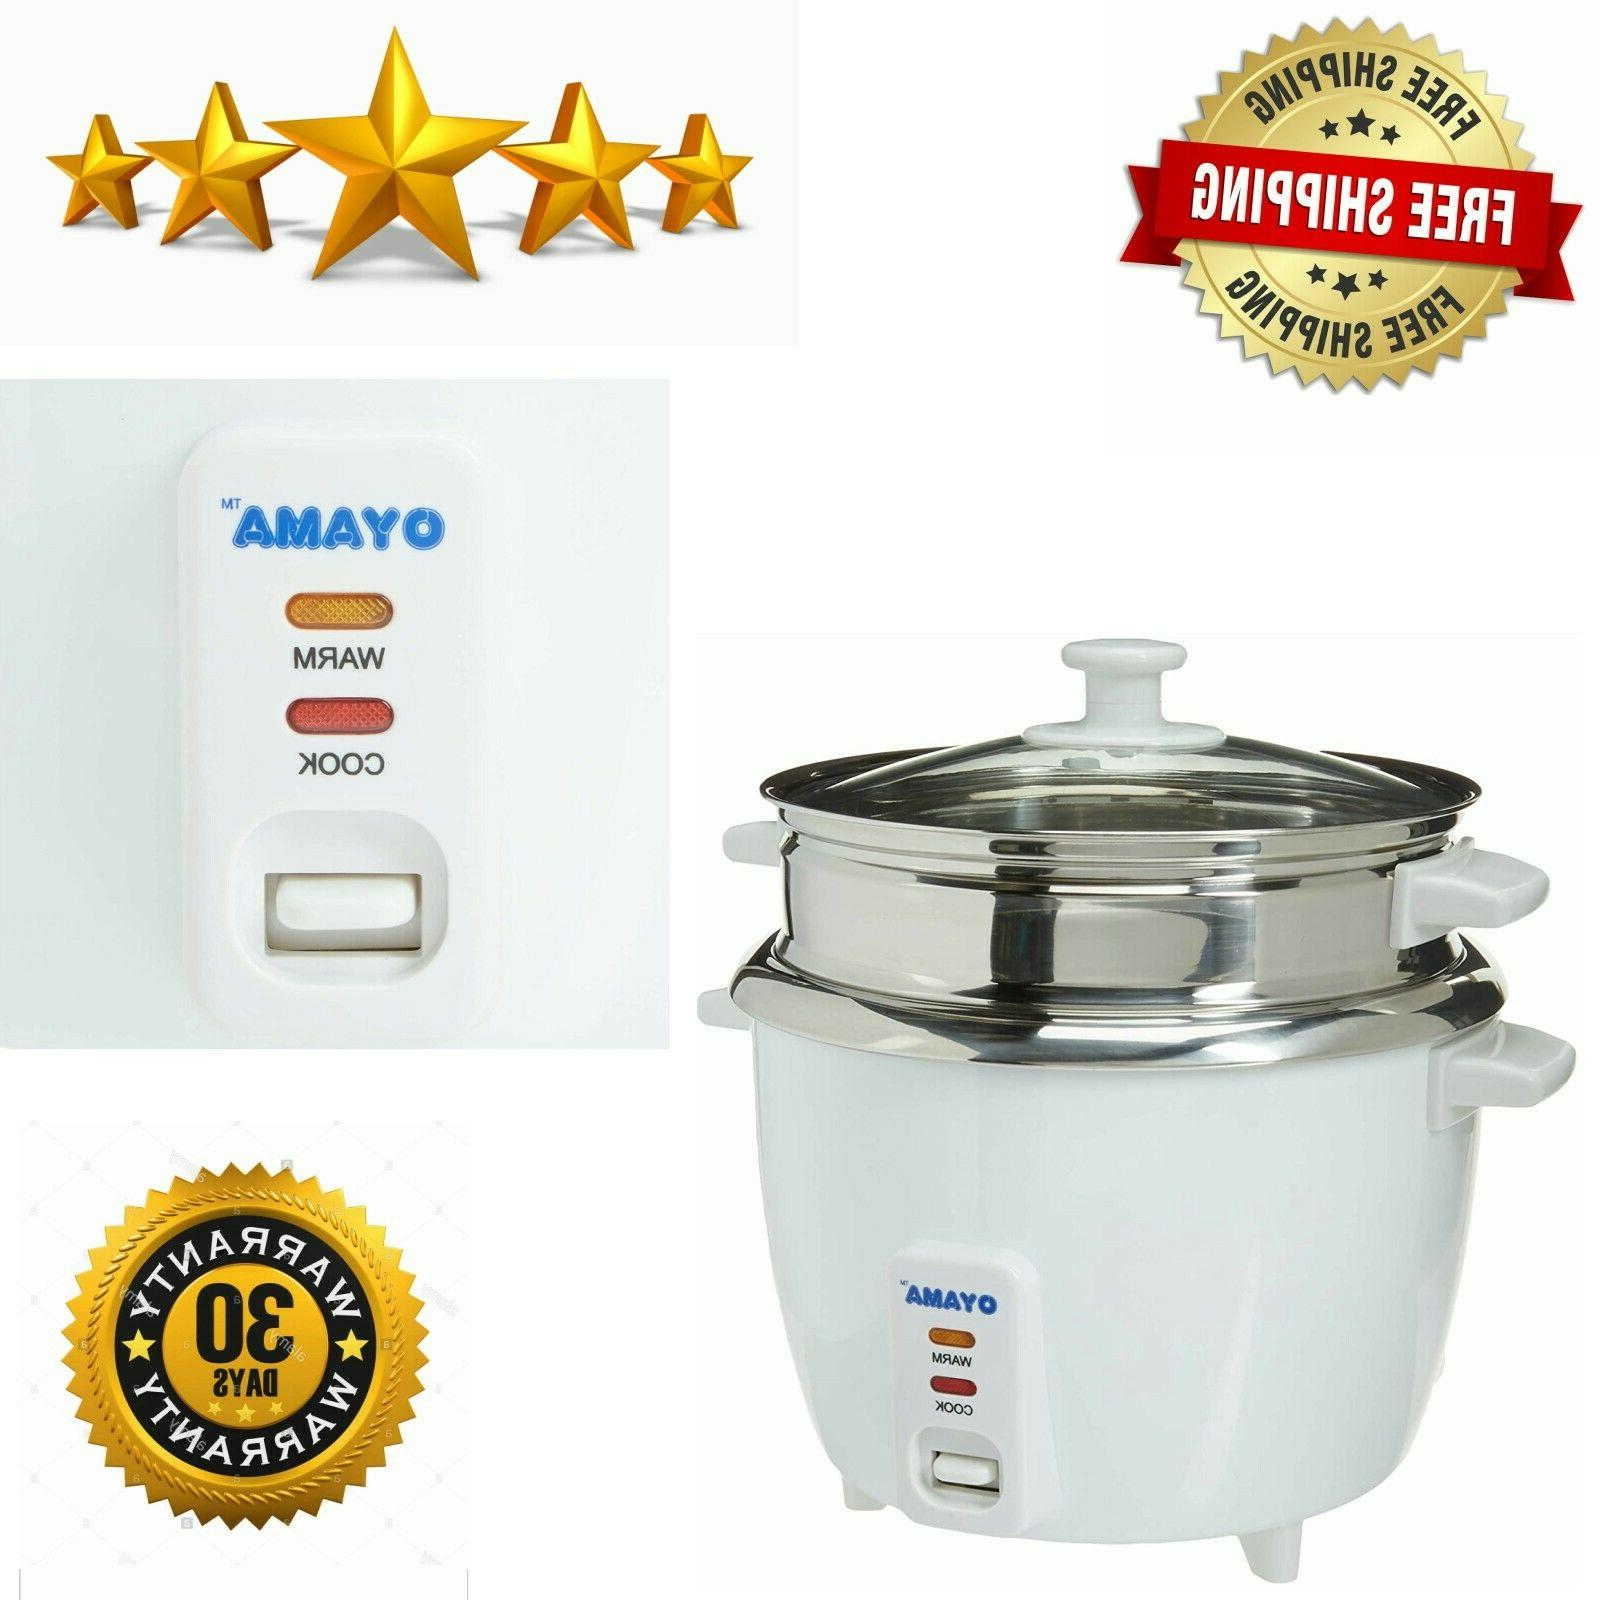 OYAMA Stainless 16-Cup   Rice Cooker, Stainless Steel Inner